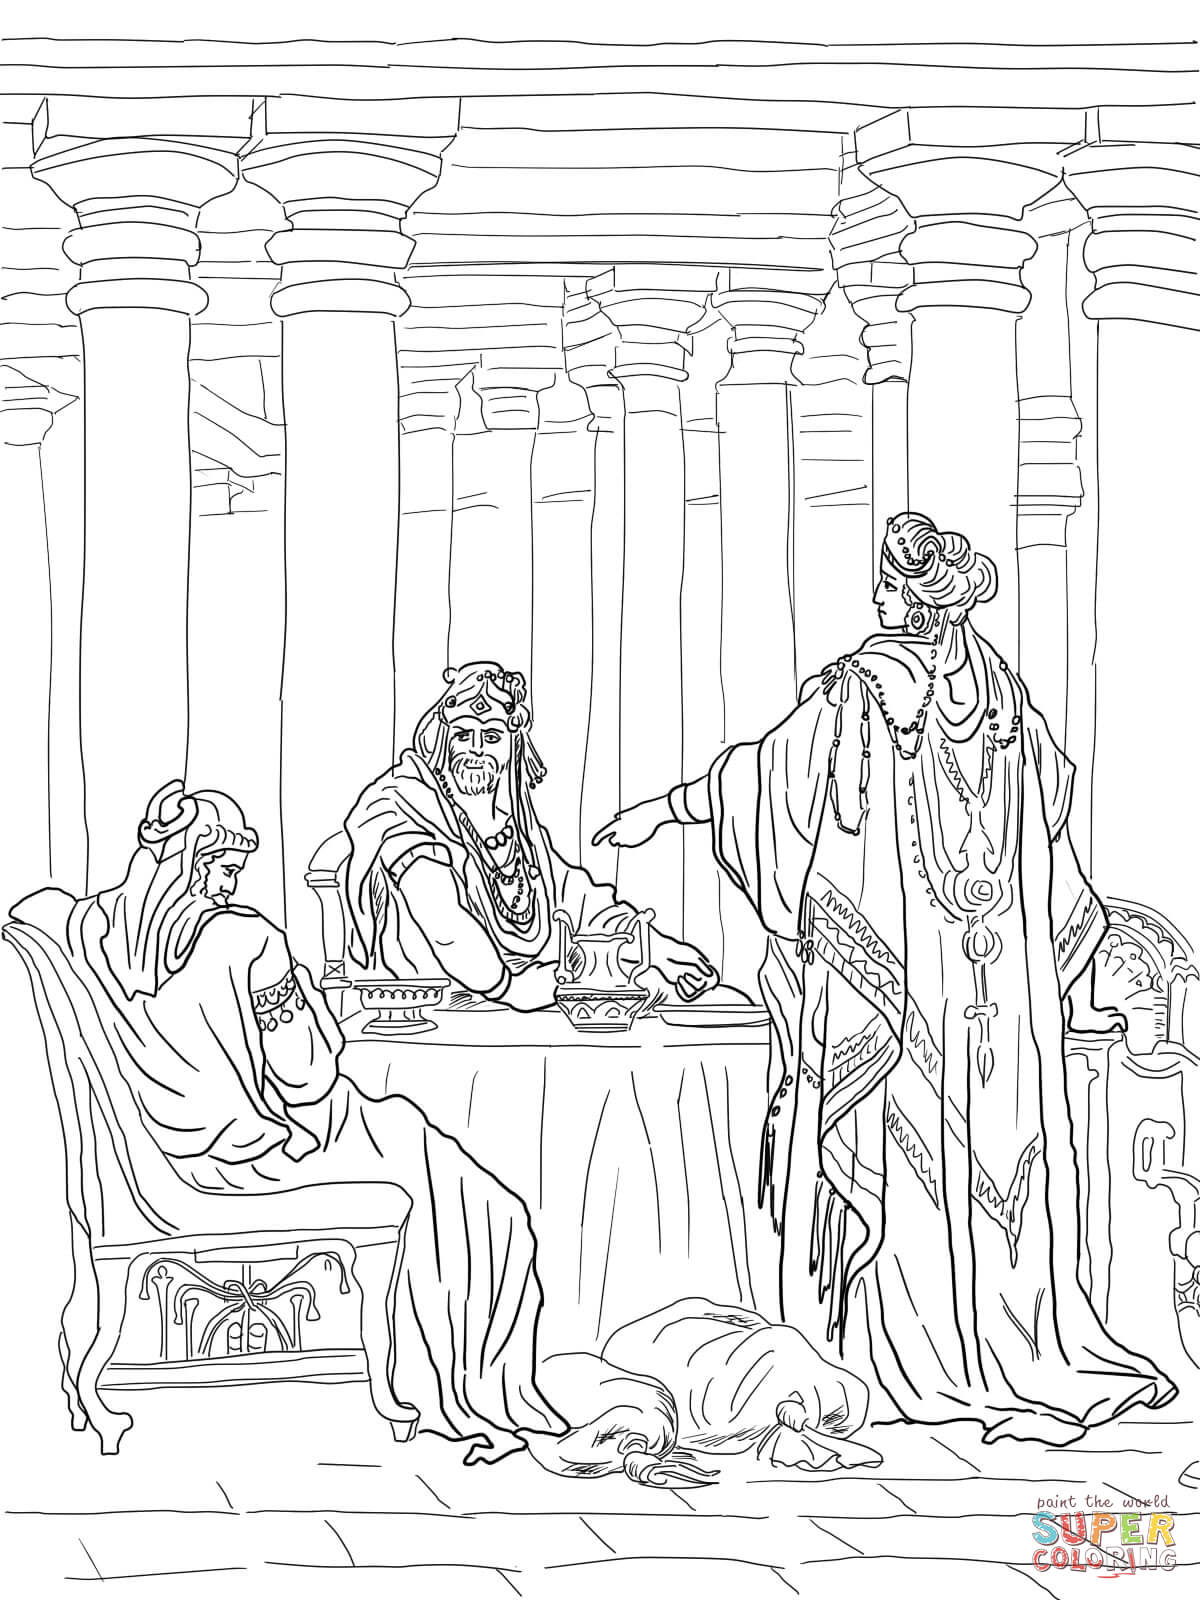 Esther Accusing Haman Coloring Page Free Printable Coloring Pages